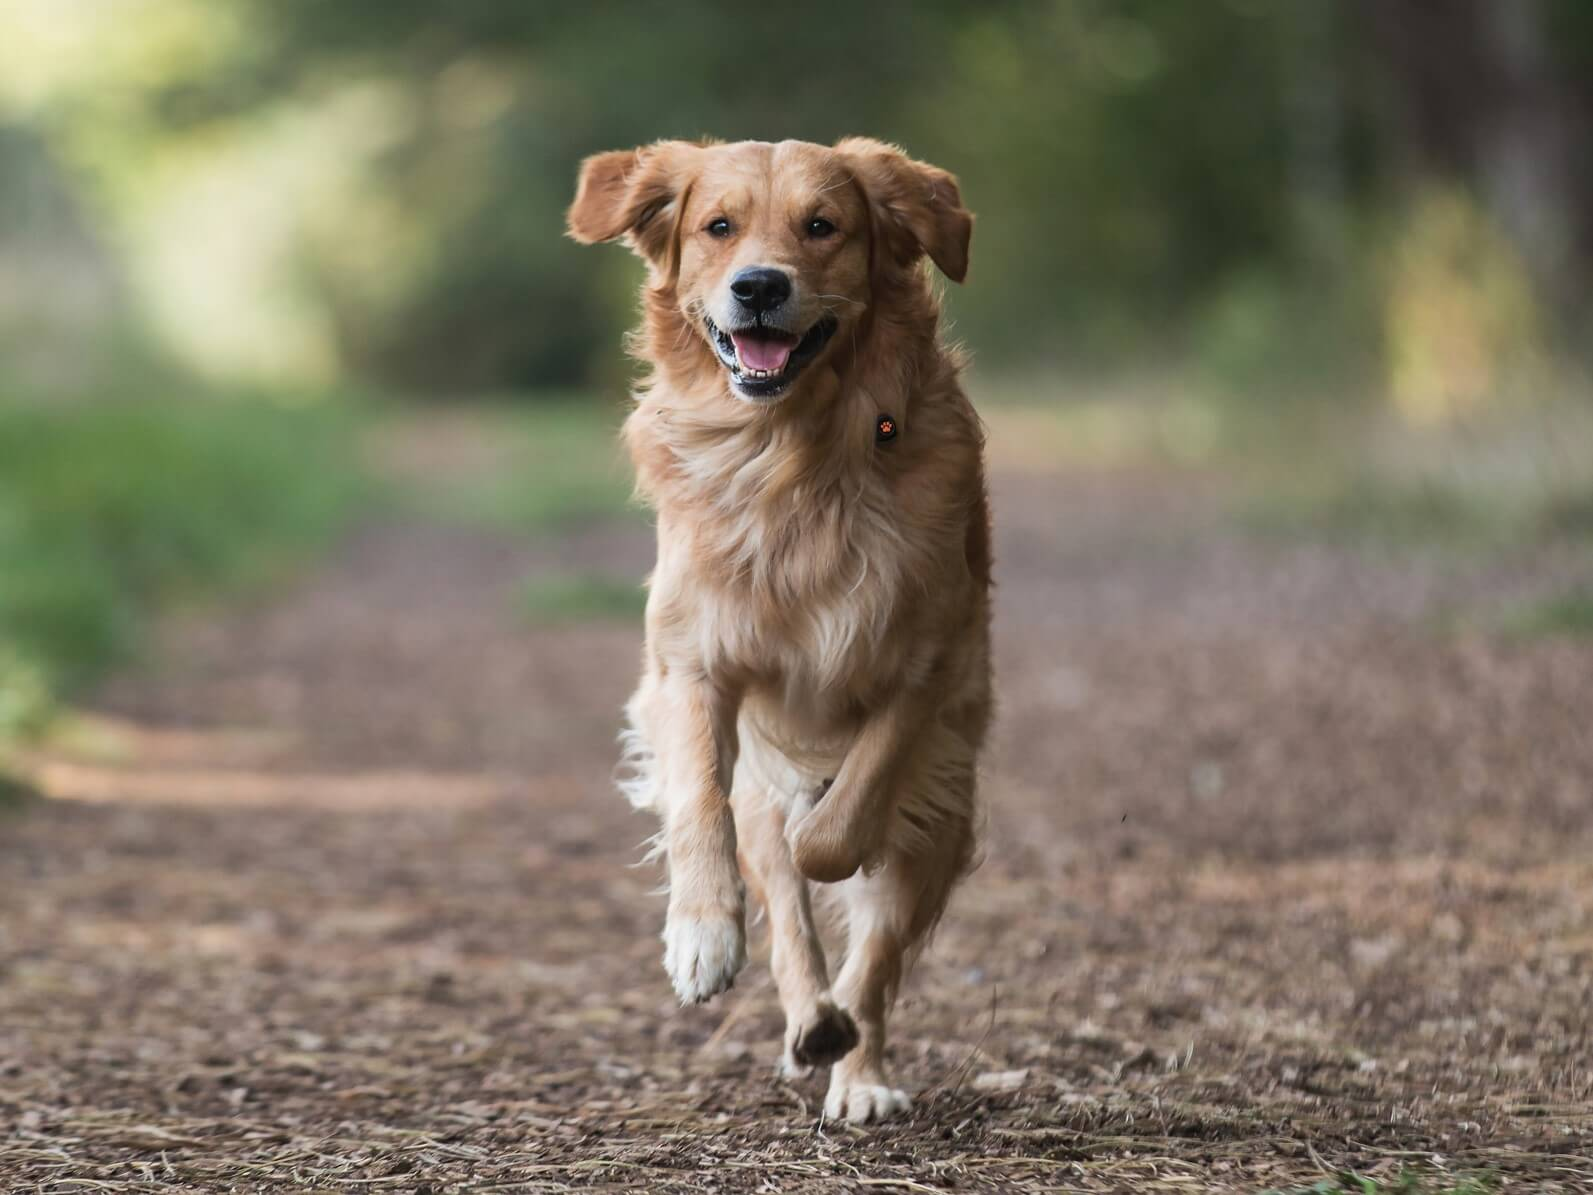 Golden Retriever running in forest